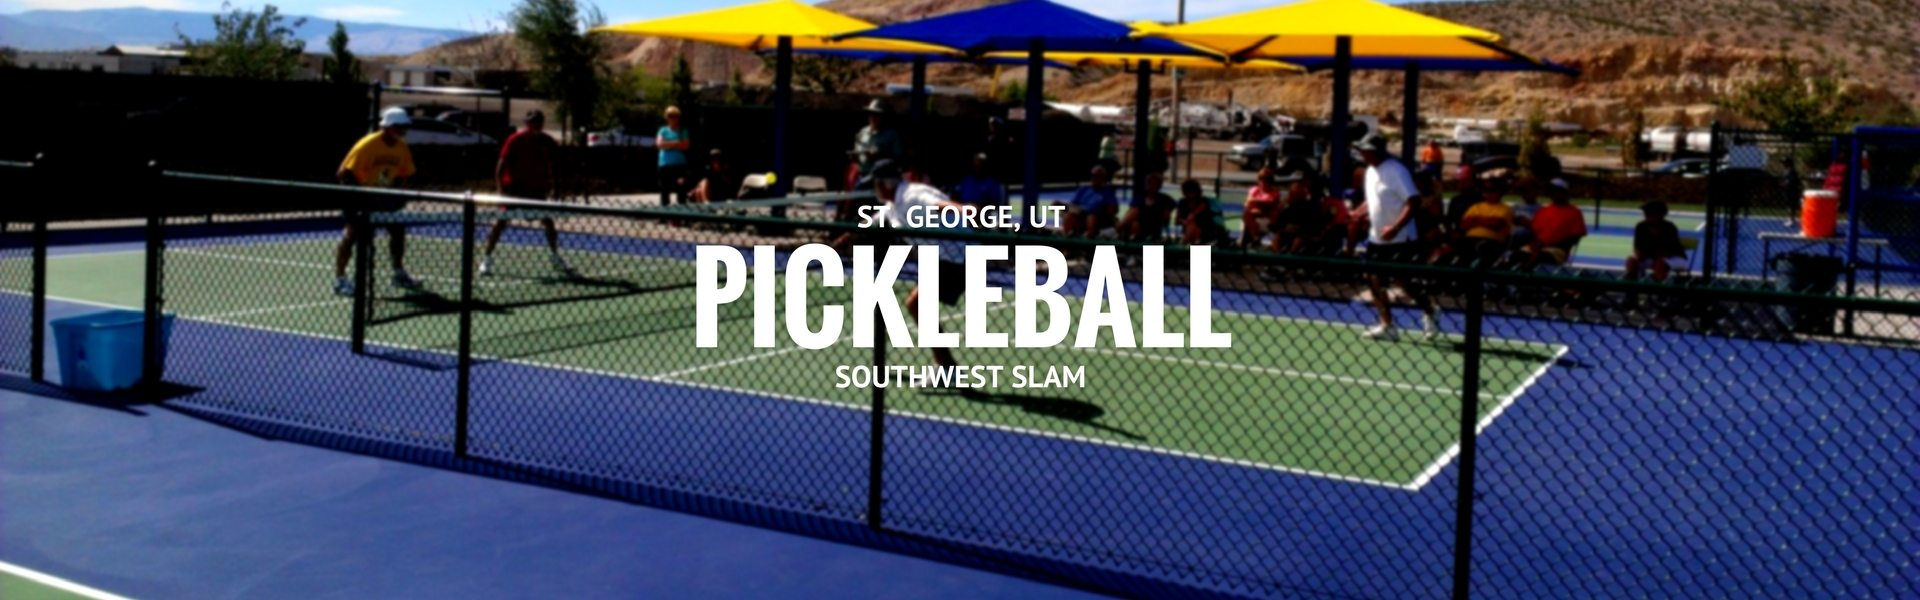 Soon to be the Pickleball Capital of the World